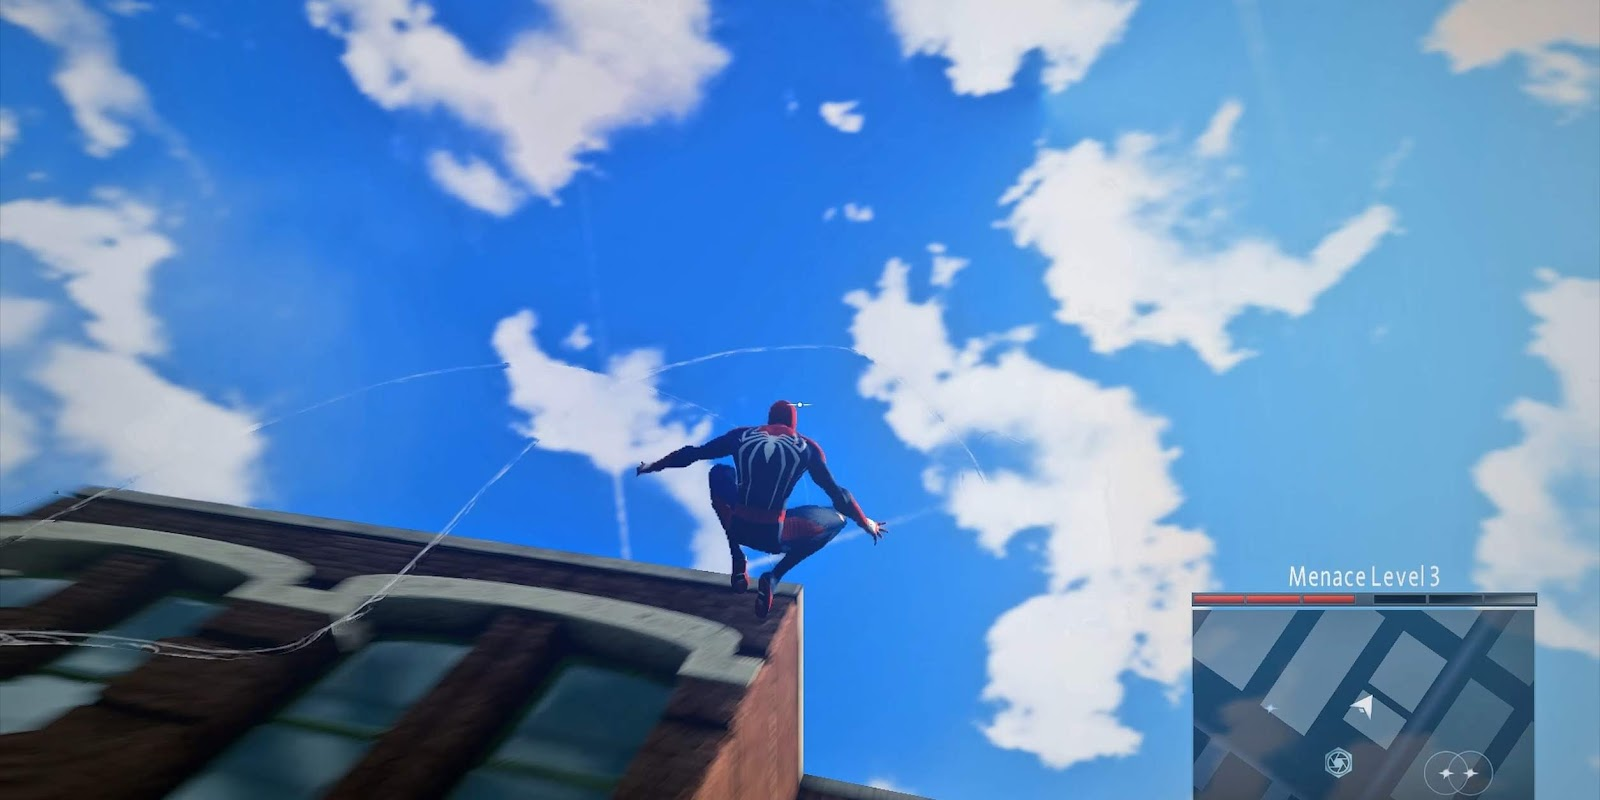 The Amazing Spider-man 2 Marvel's Spider-man PS4 Makeover